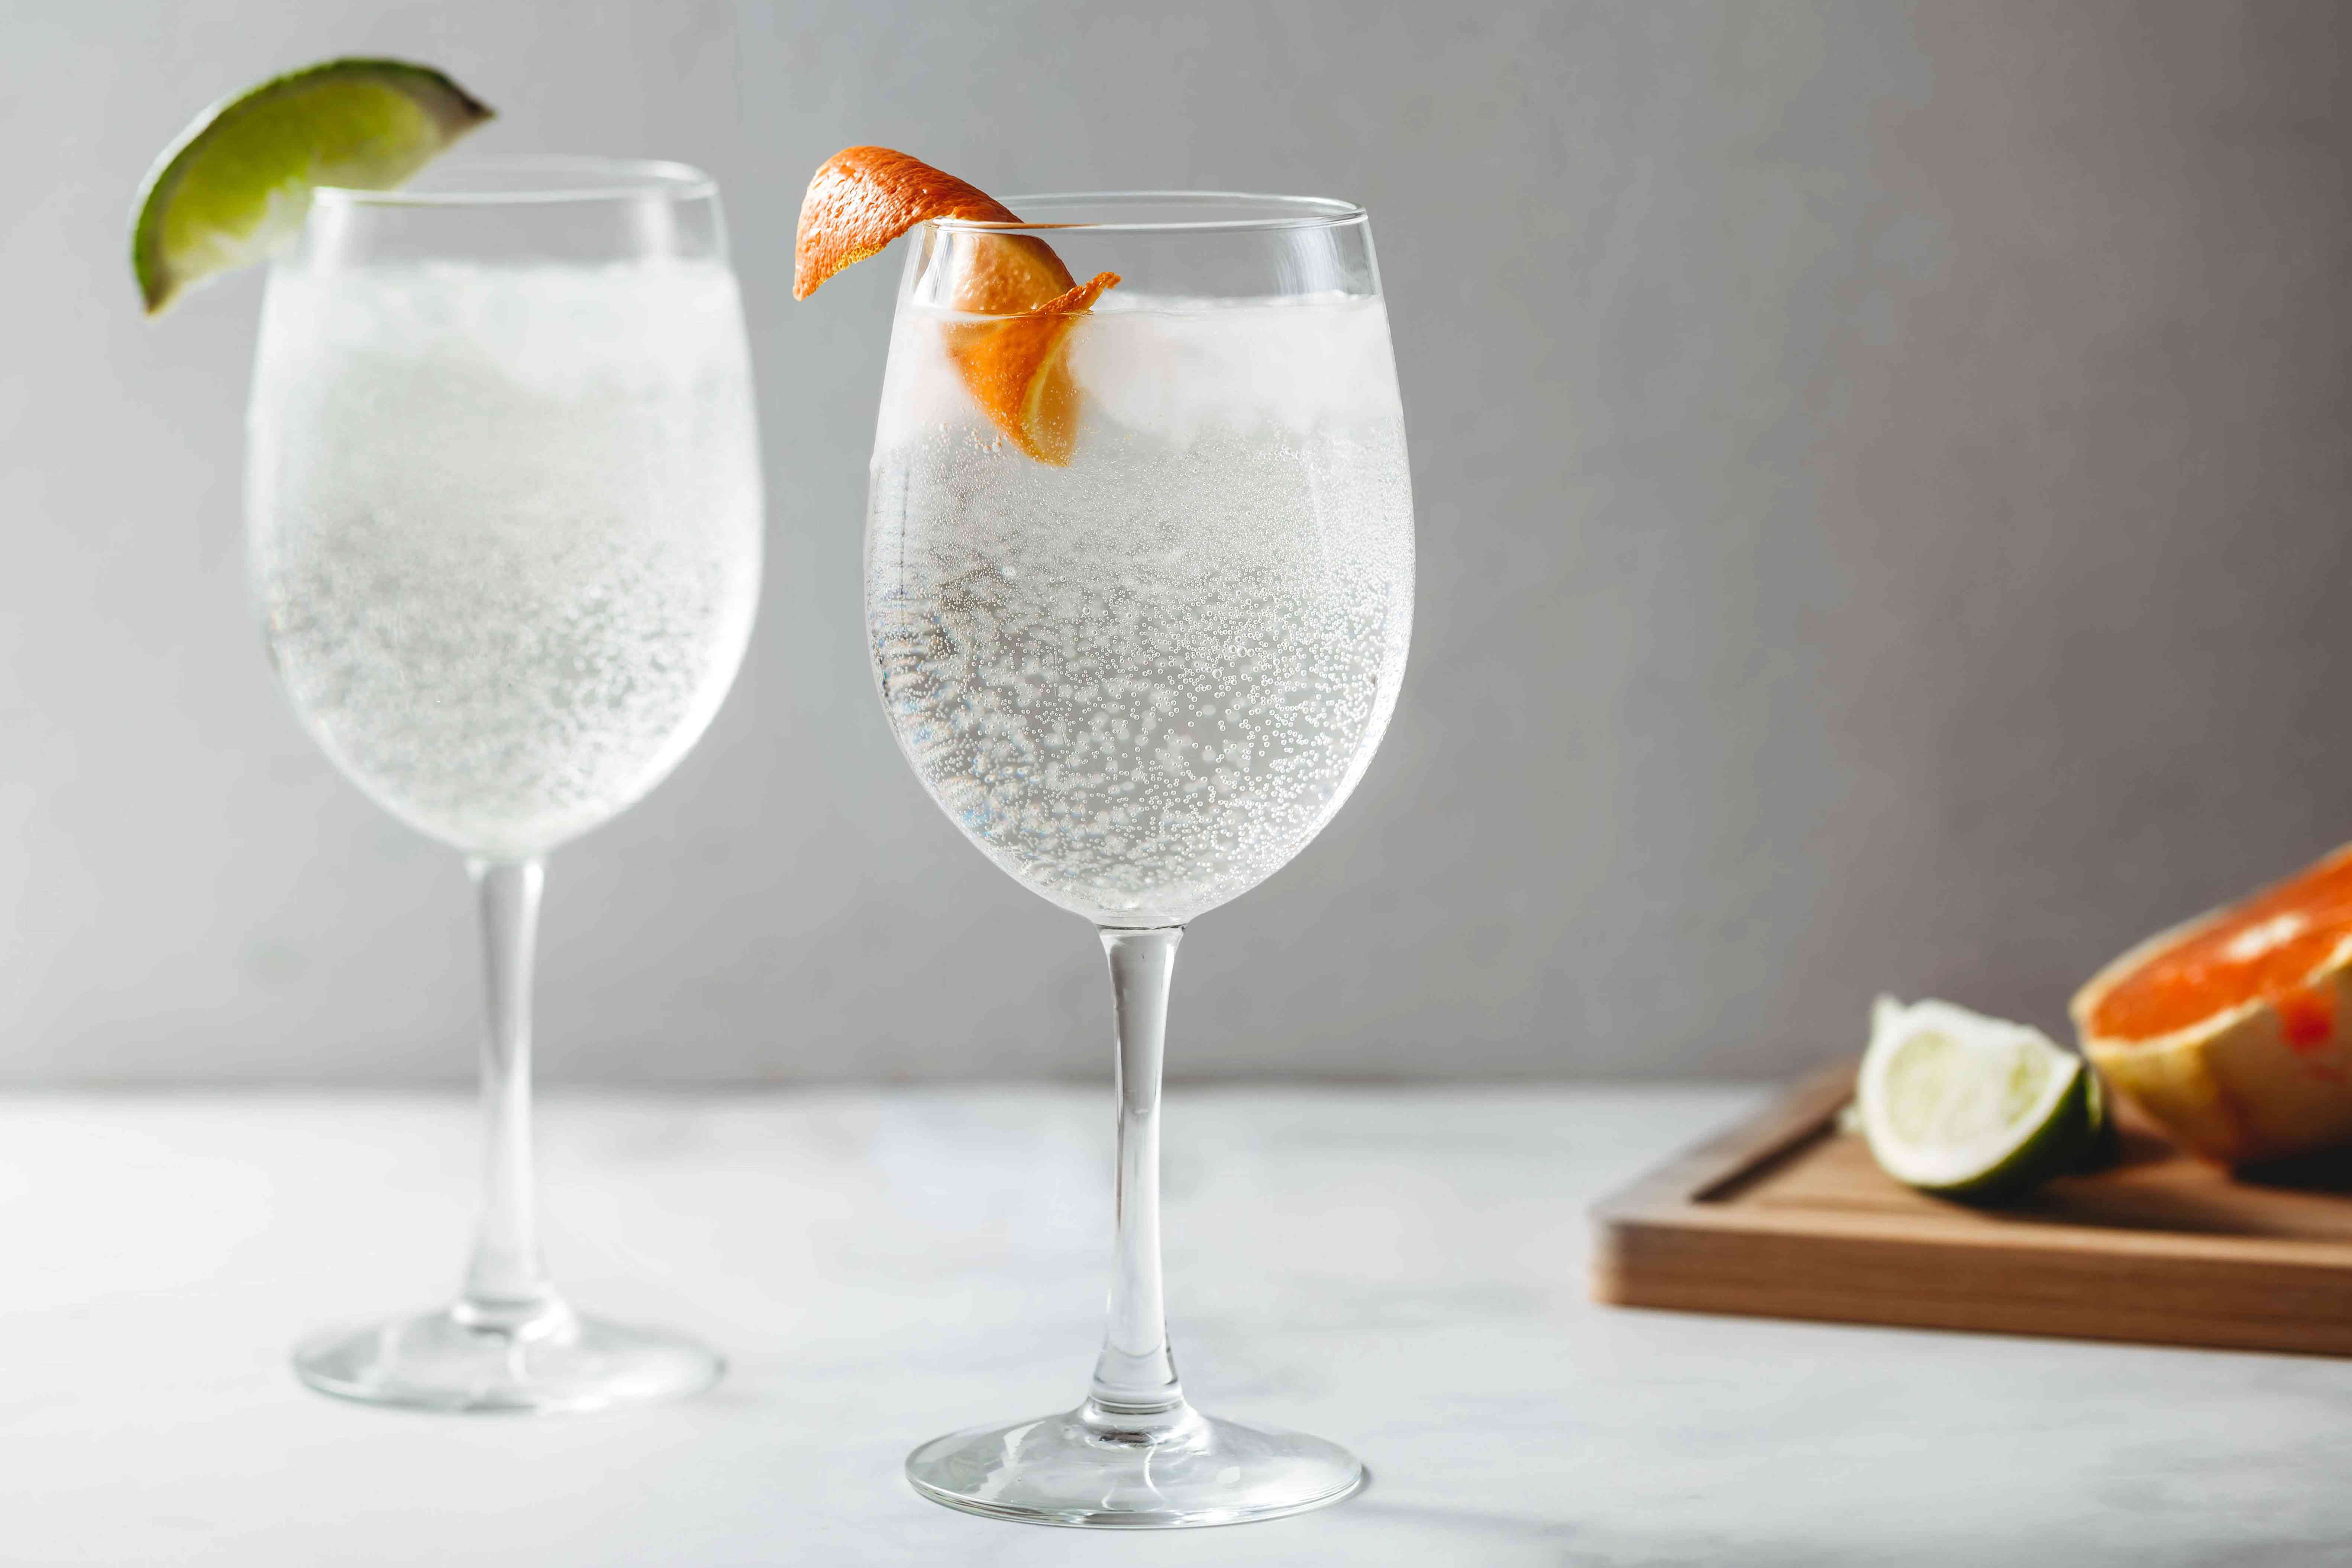 White wine spritzers garnished with lime and orange peel